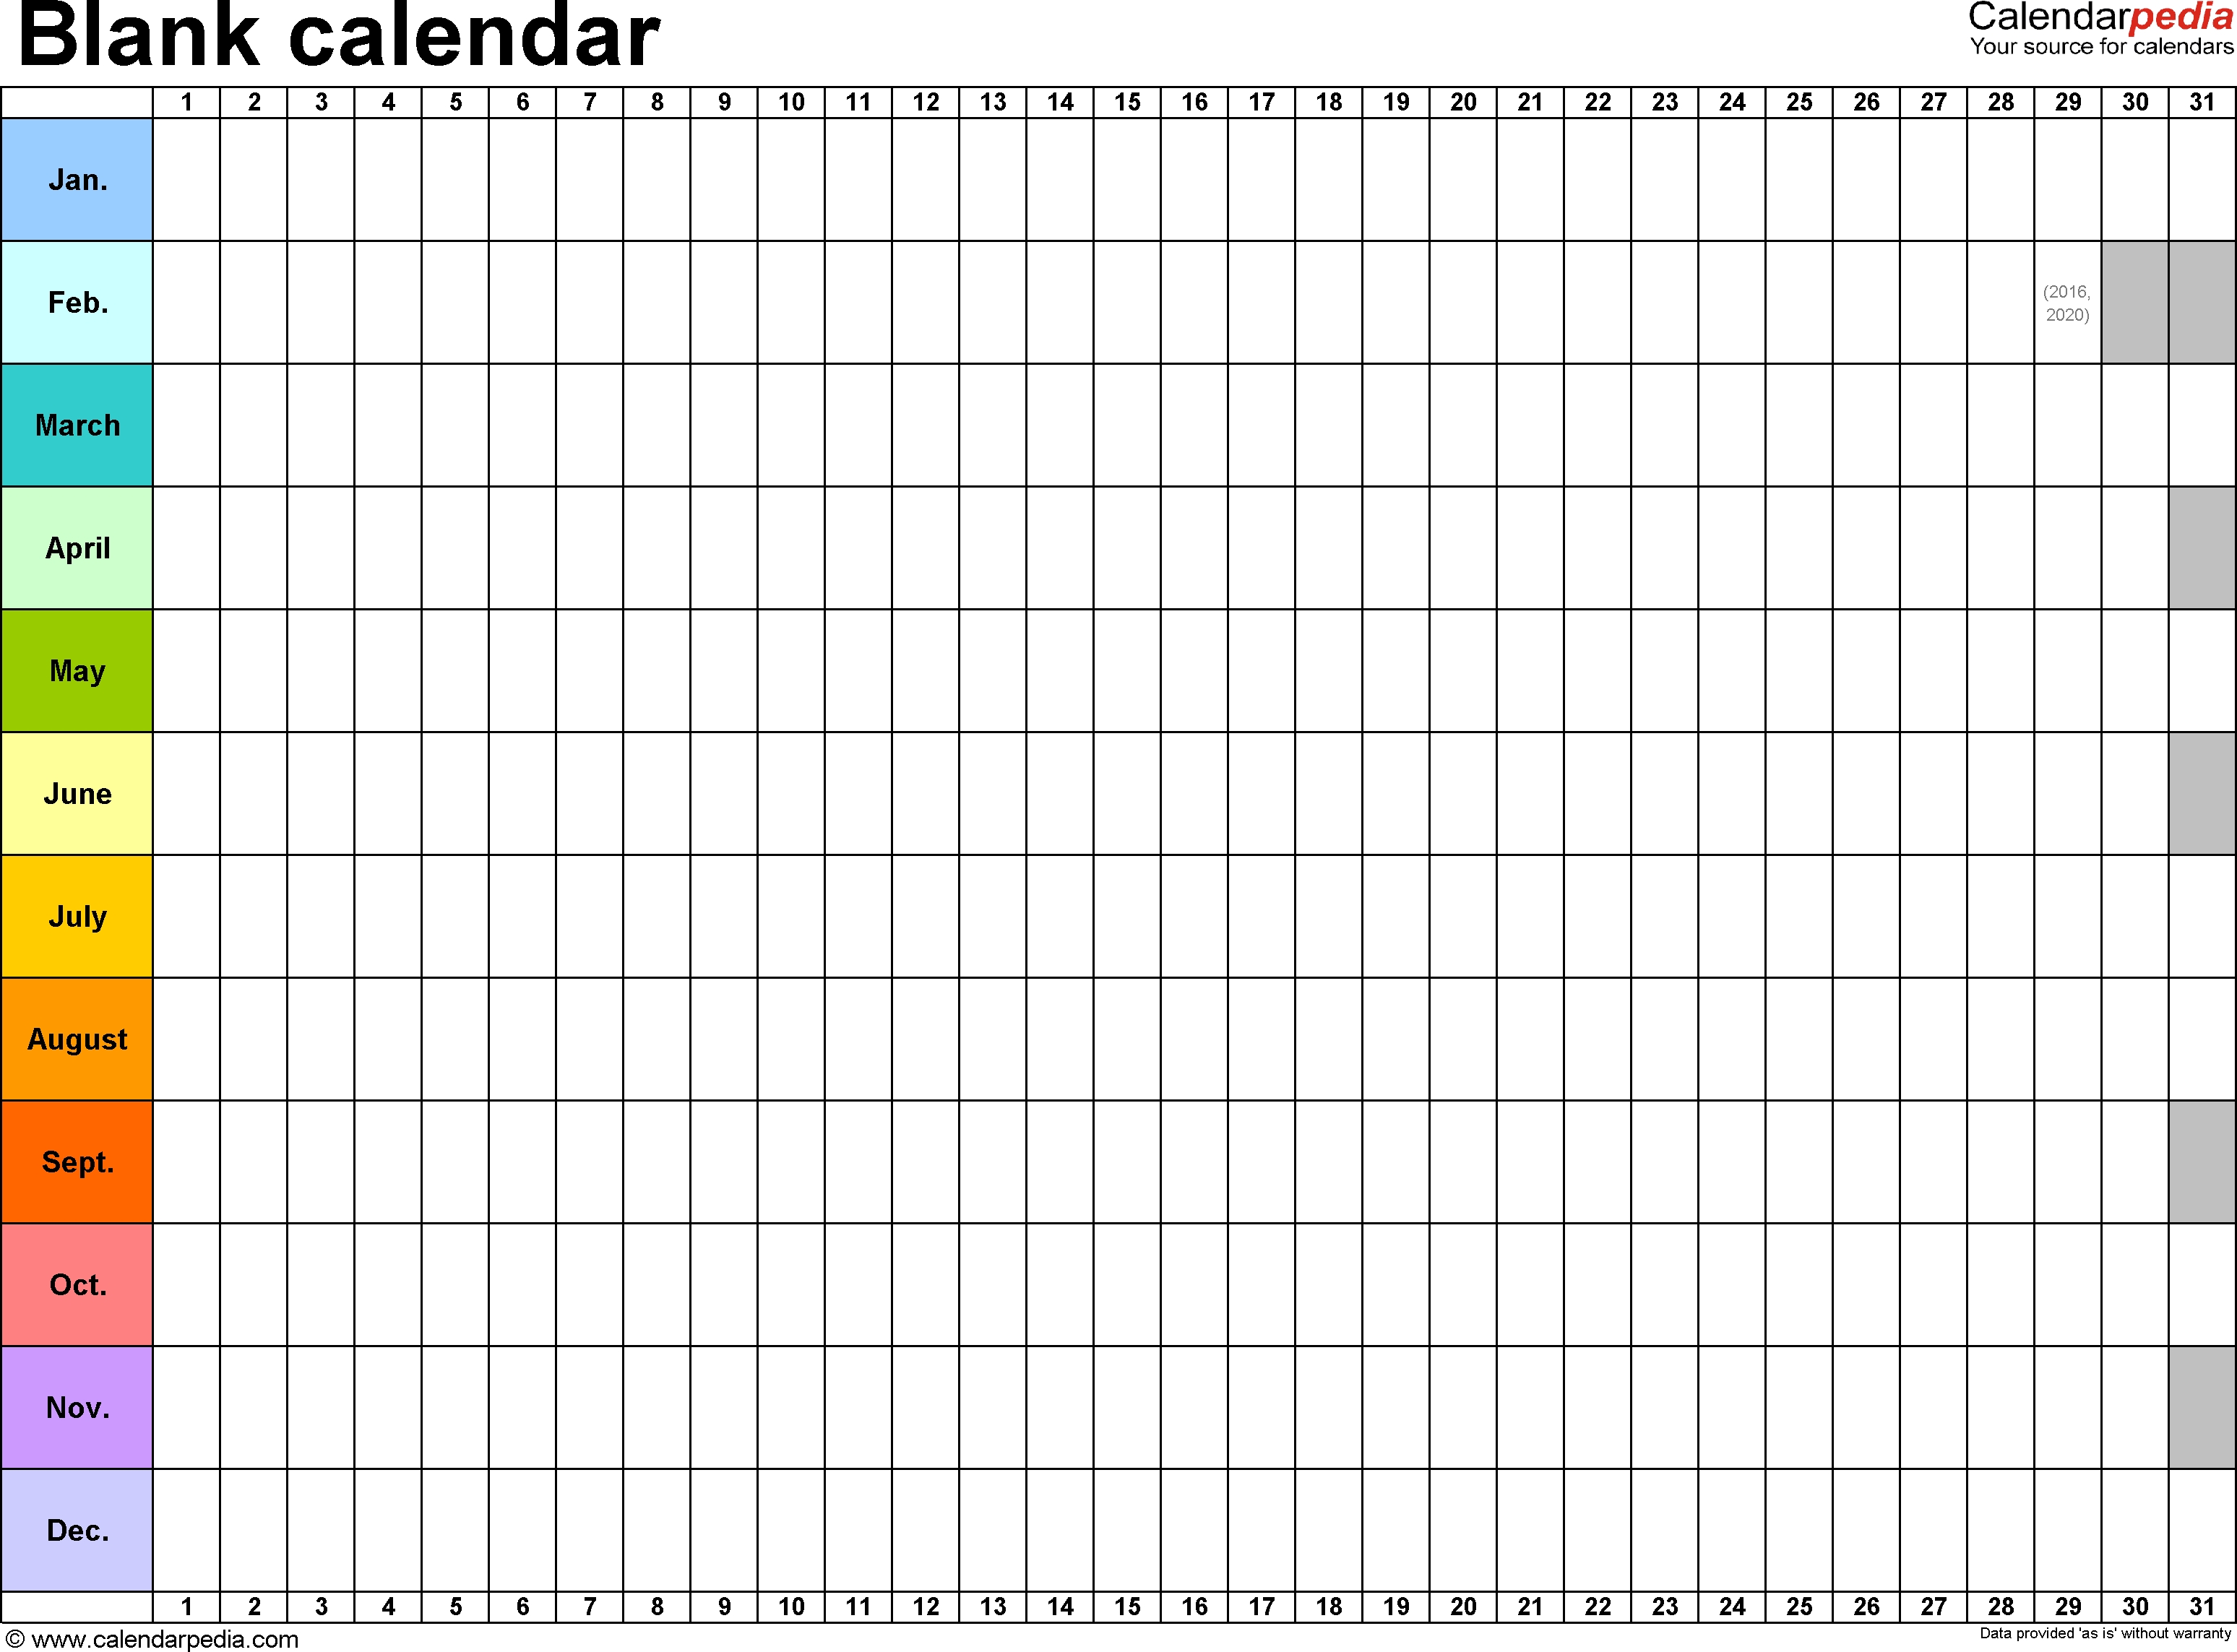 Blank Calendar - 9 Free Printable Microsoft Word Templates intended for 3 Month Blank Calendar Template